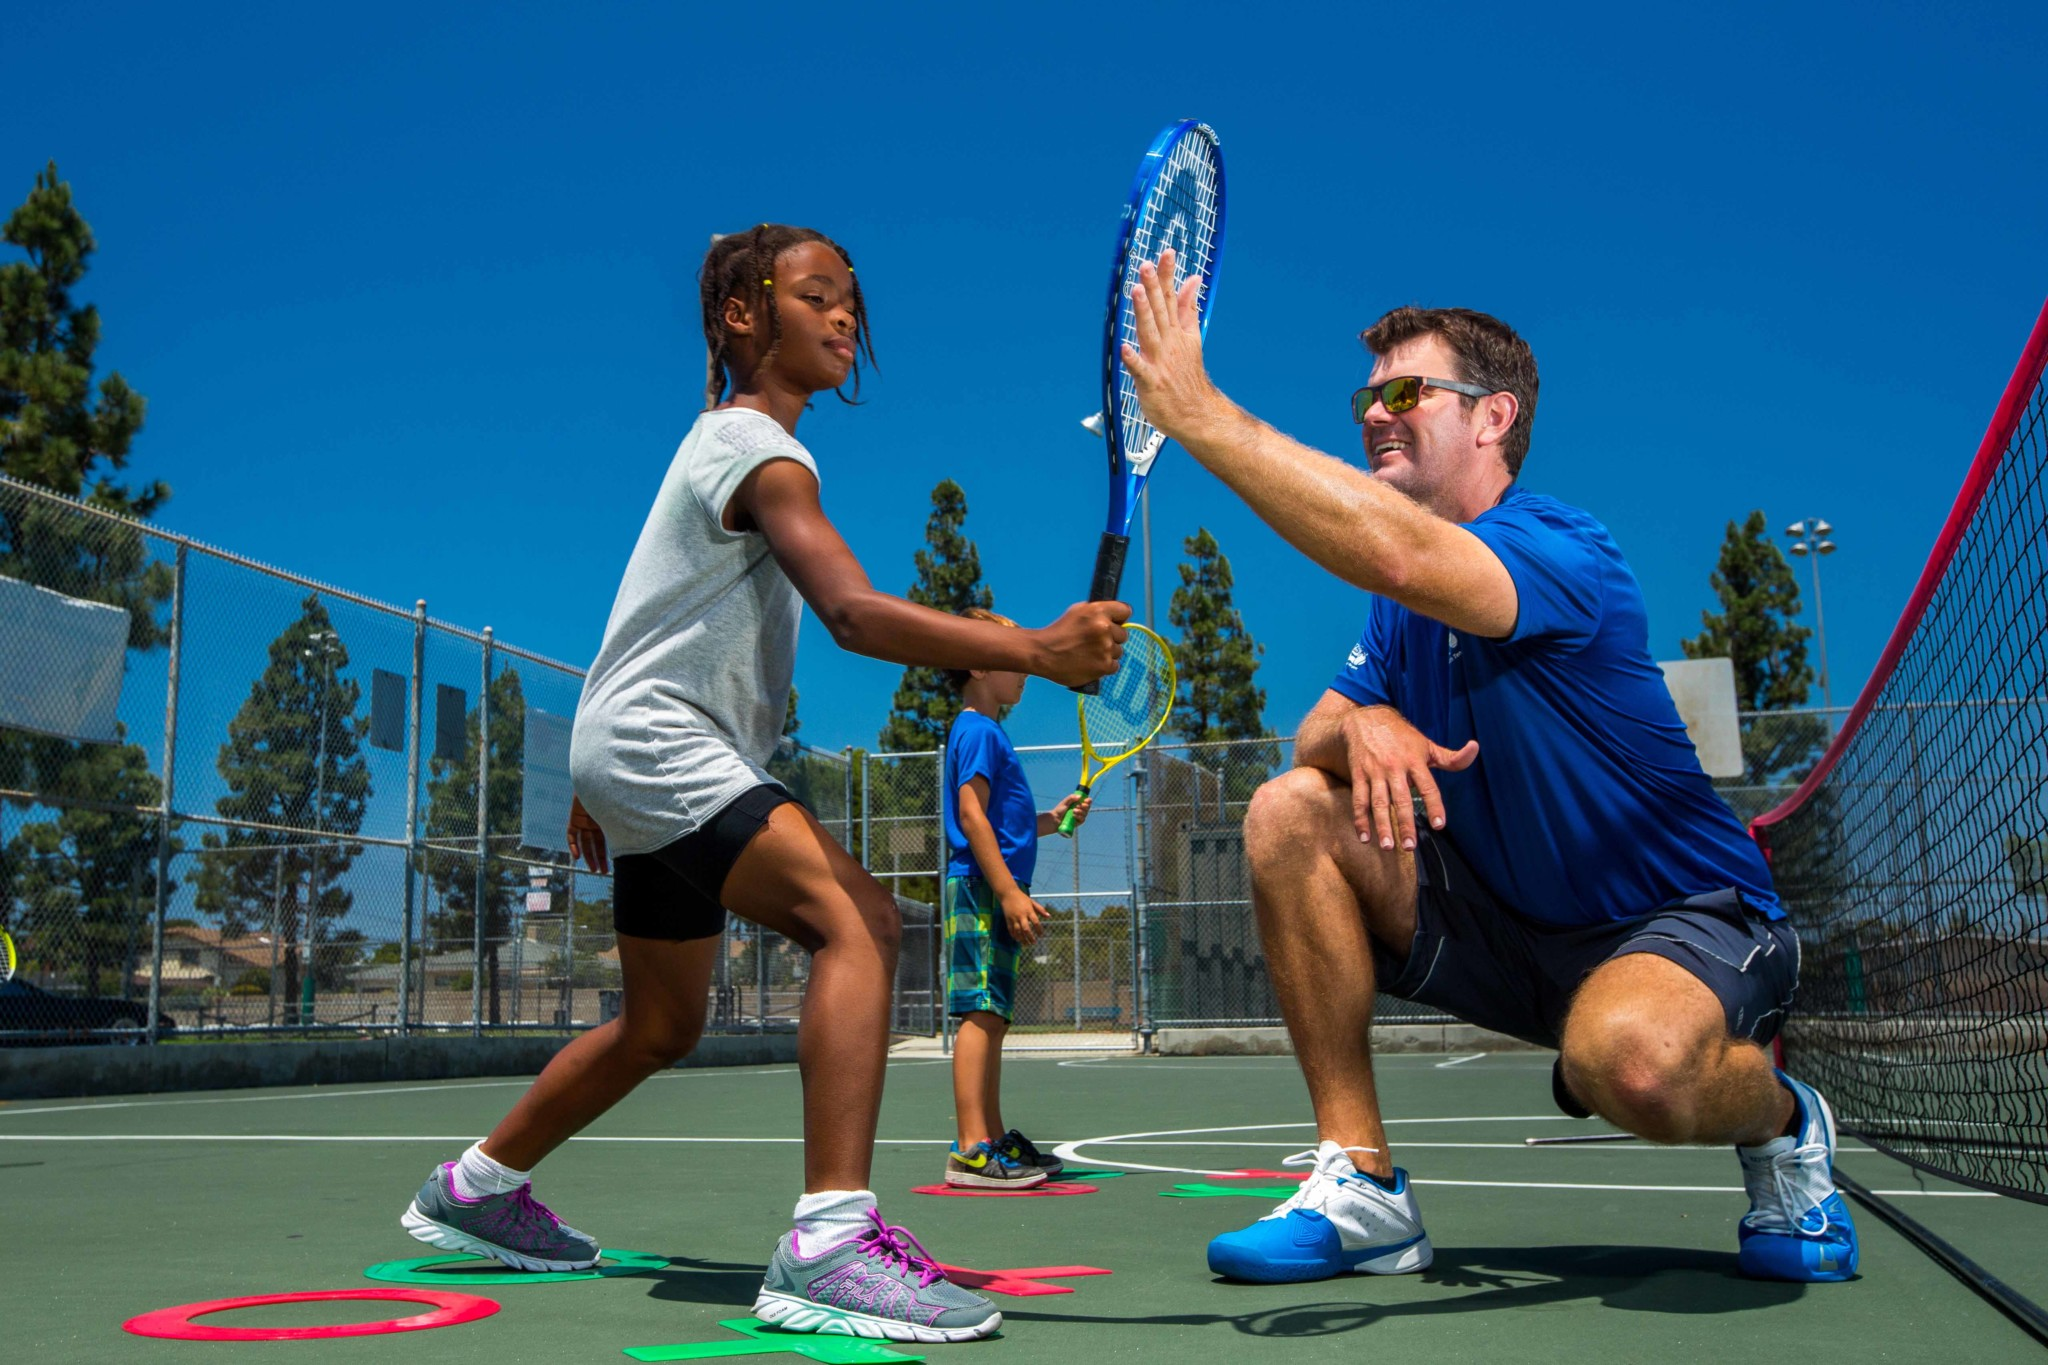 TGA Premier Sports Presents Tennis - Students will experience a mix of tennis instruction, rules & scoring lessons, educational components (including STEM experiments!), character development lessons and physical activity as they advance through the five-level program. September 10-October 22$133.00Click Here To Register.